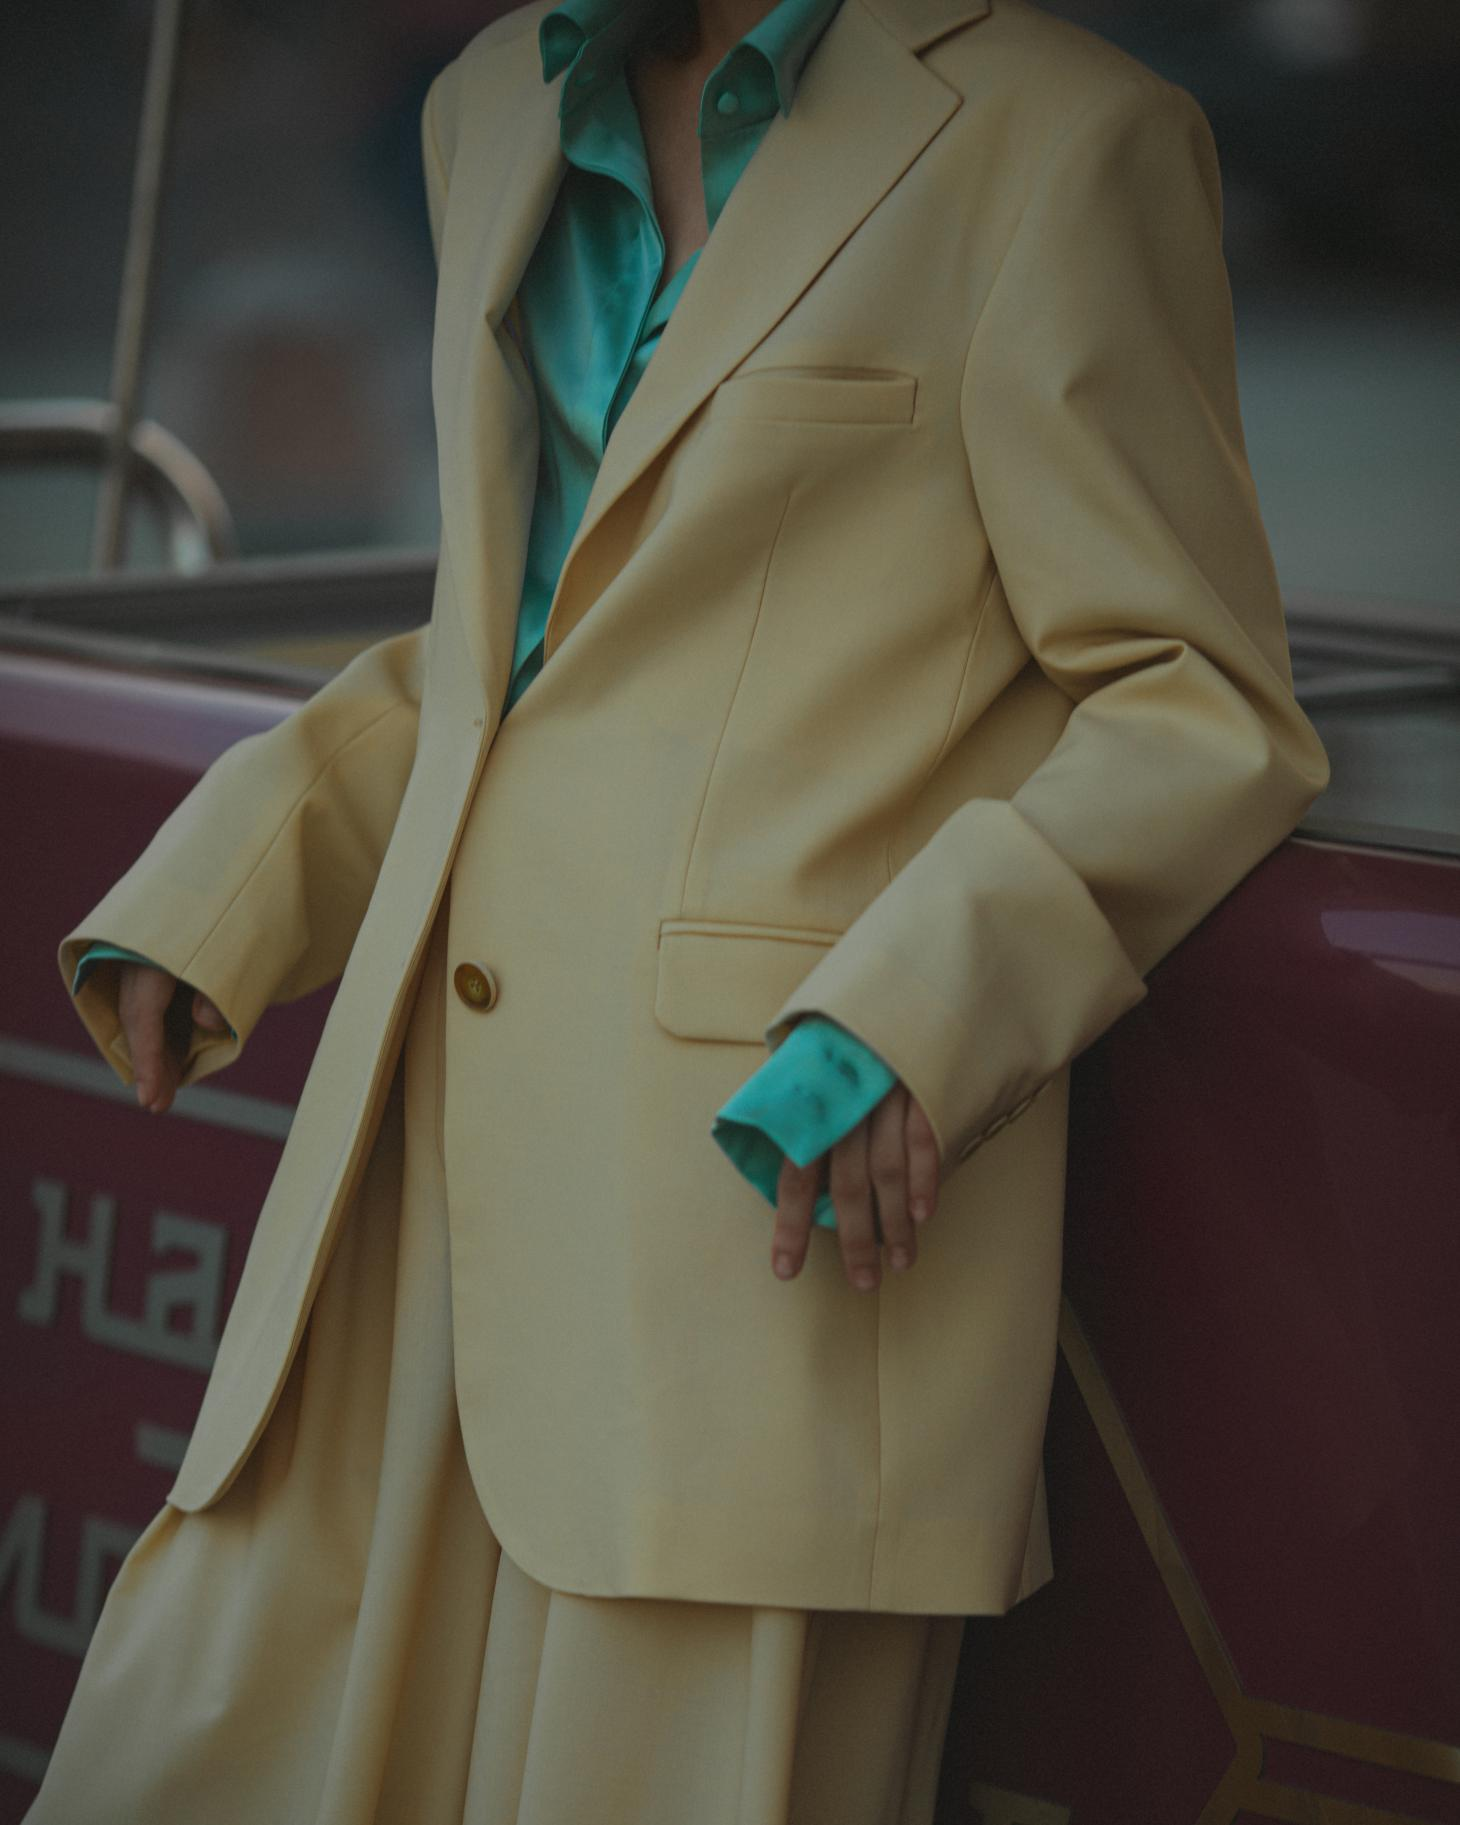 Lesyanebo ss20 features a tailored pale yellow suit